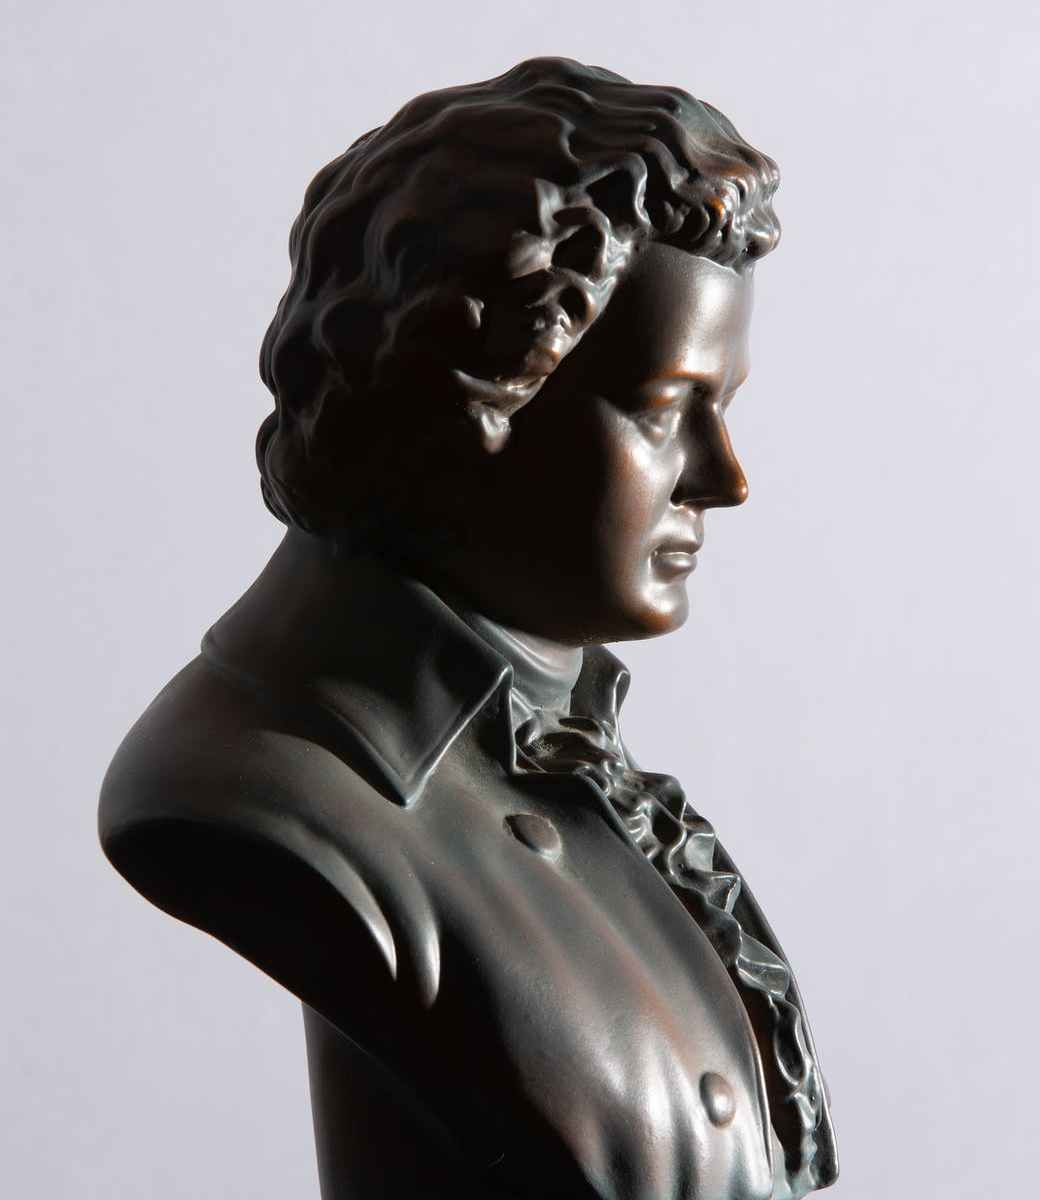 a a bronze statue of ludwig van beethoven